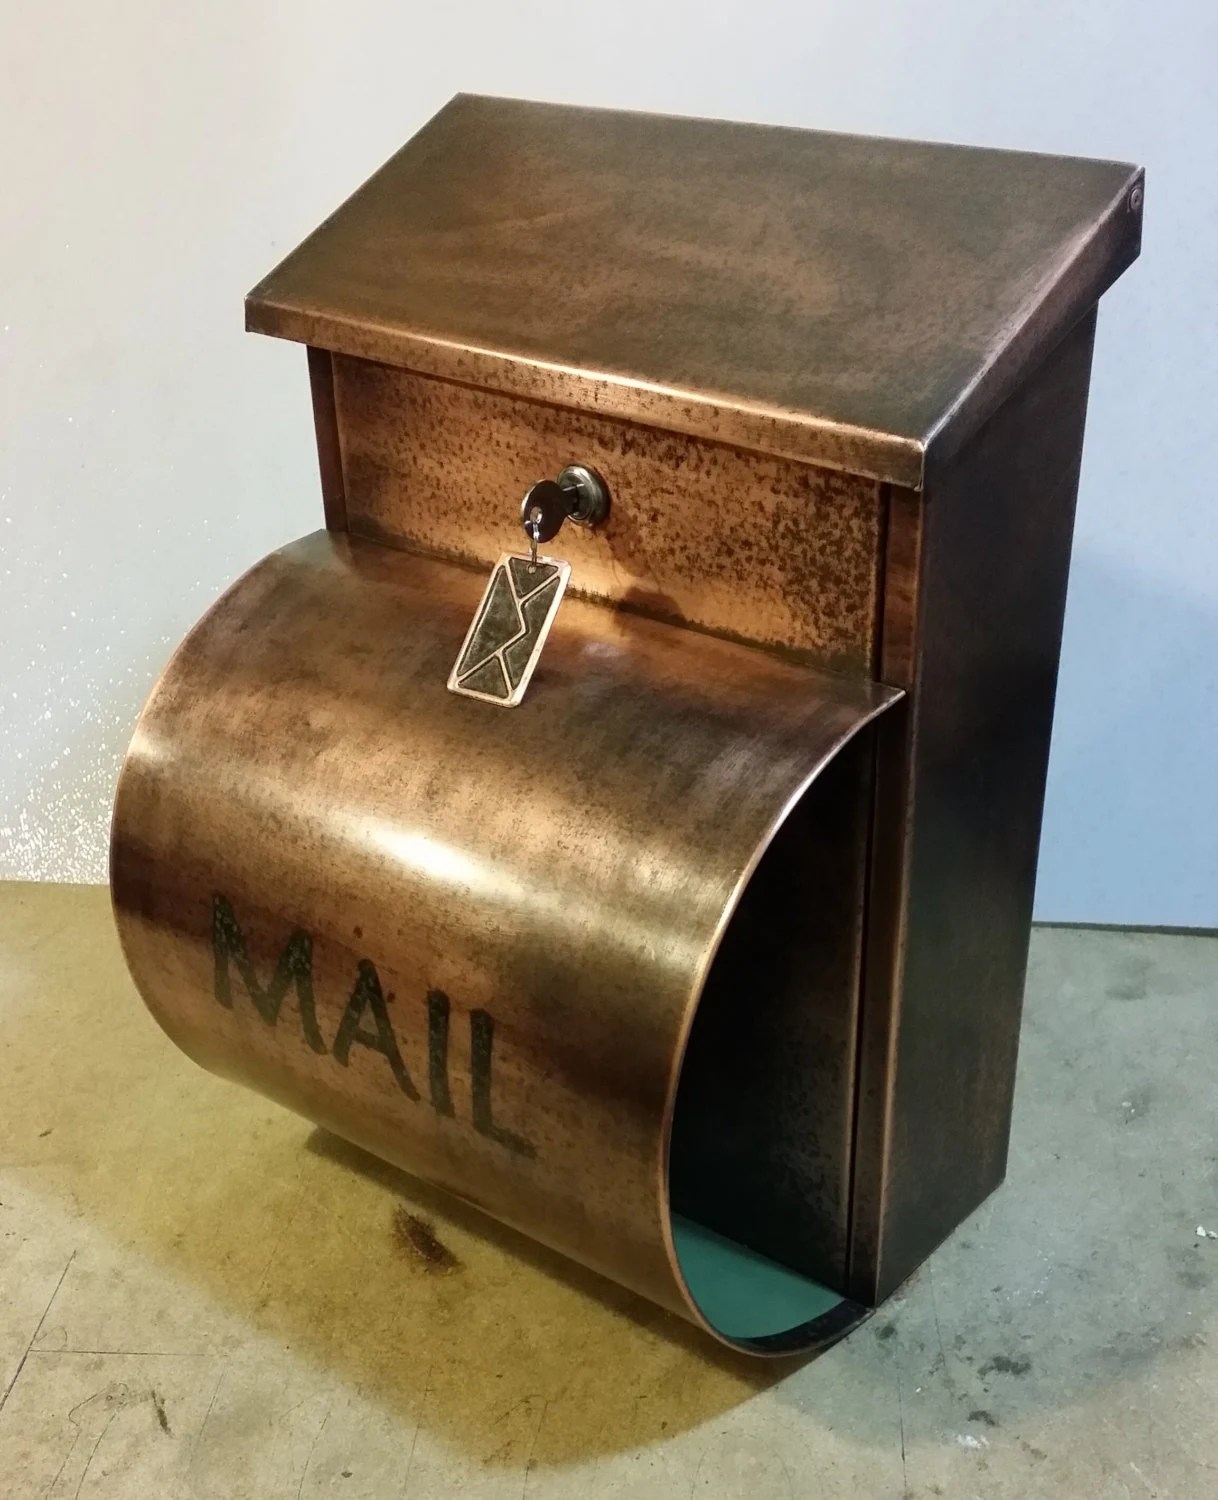 Copper Mailbox Patina Large Patina Copper Mailbox With Newspaper Holder 20 Ounce